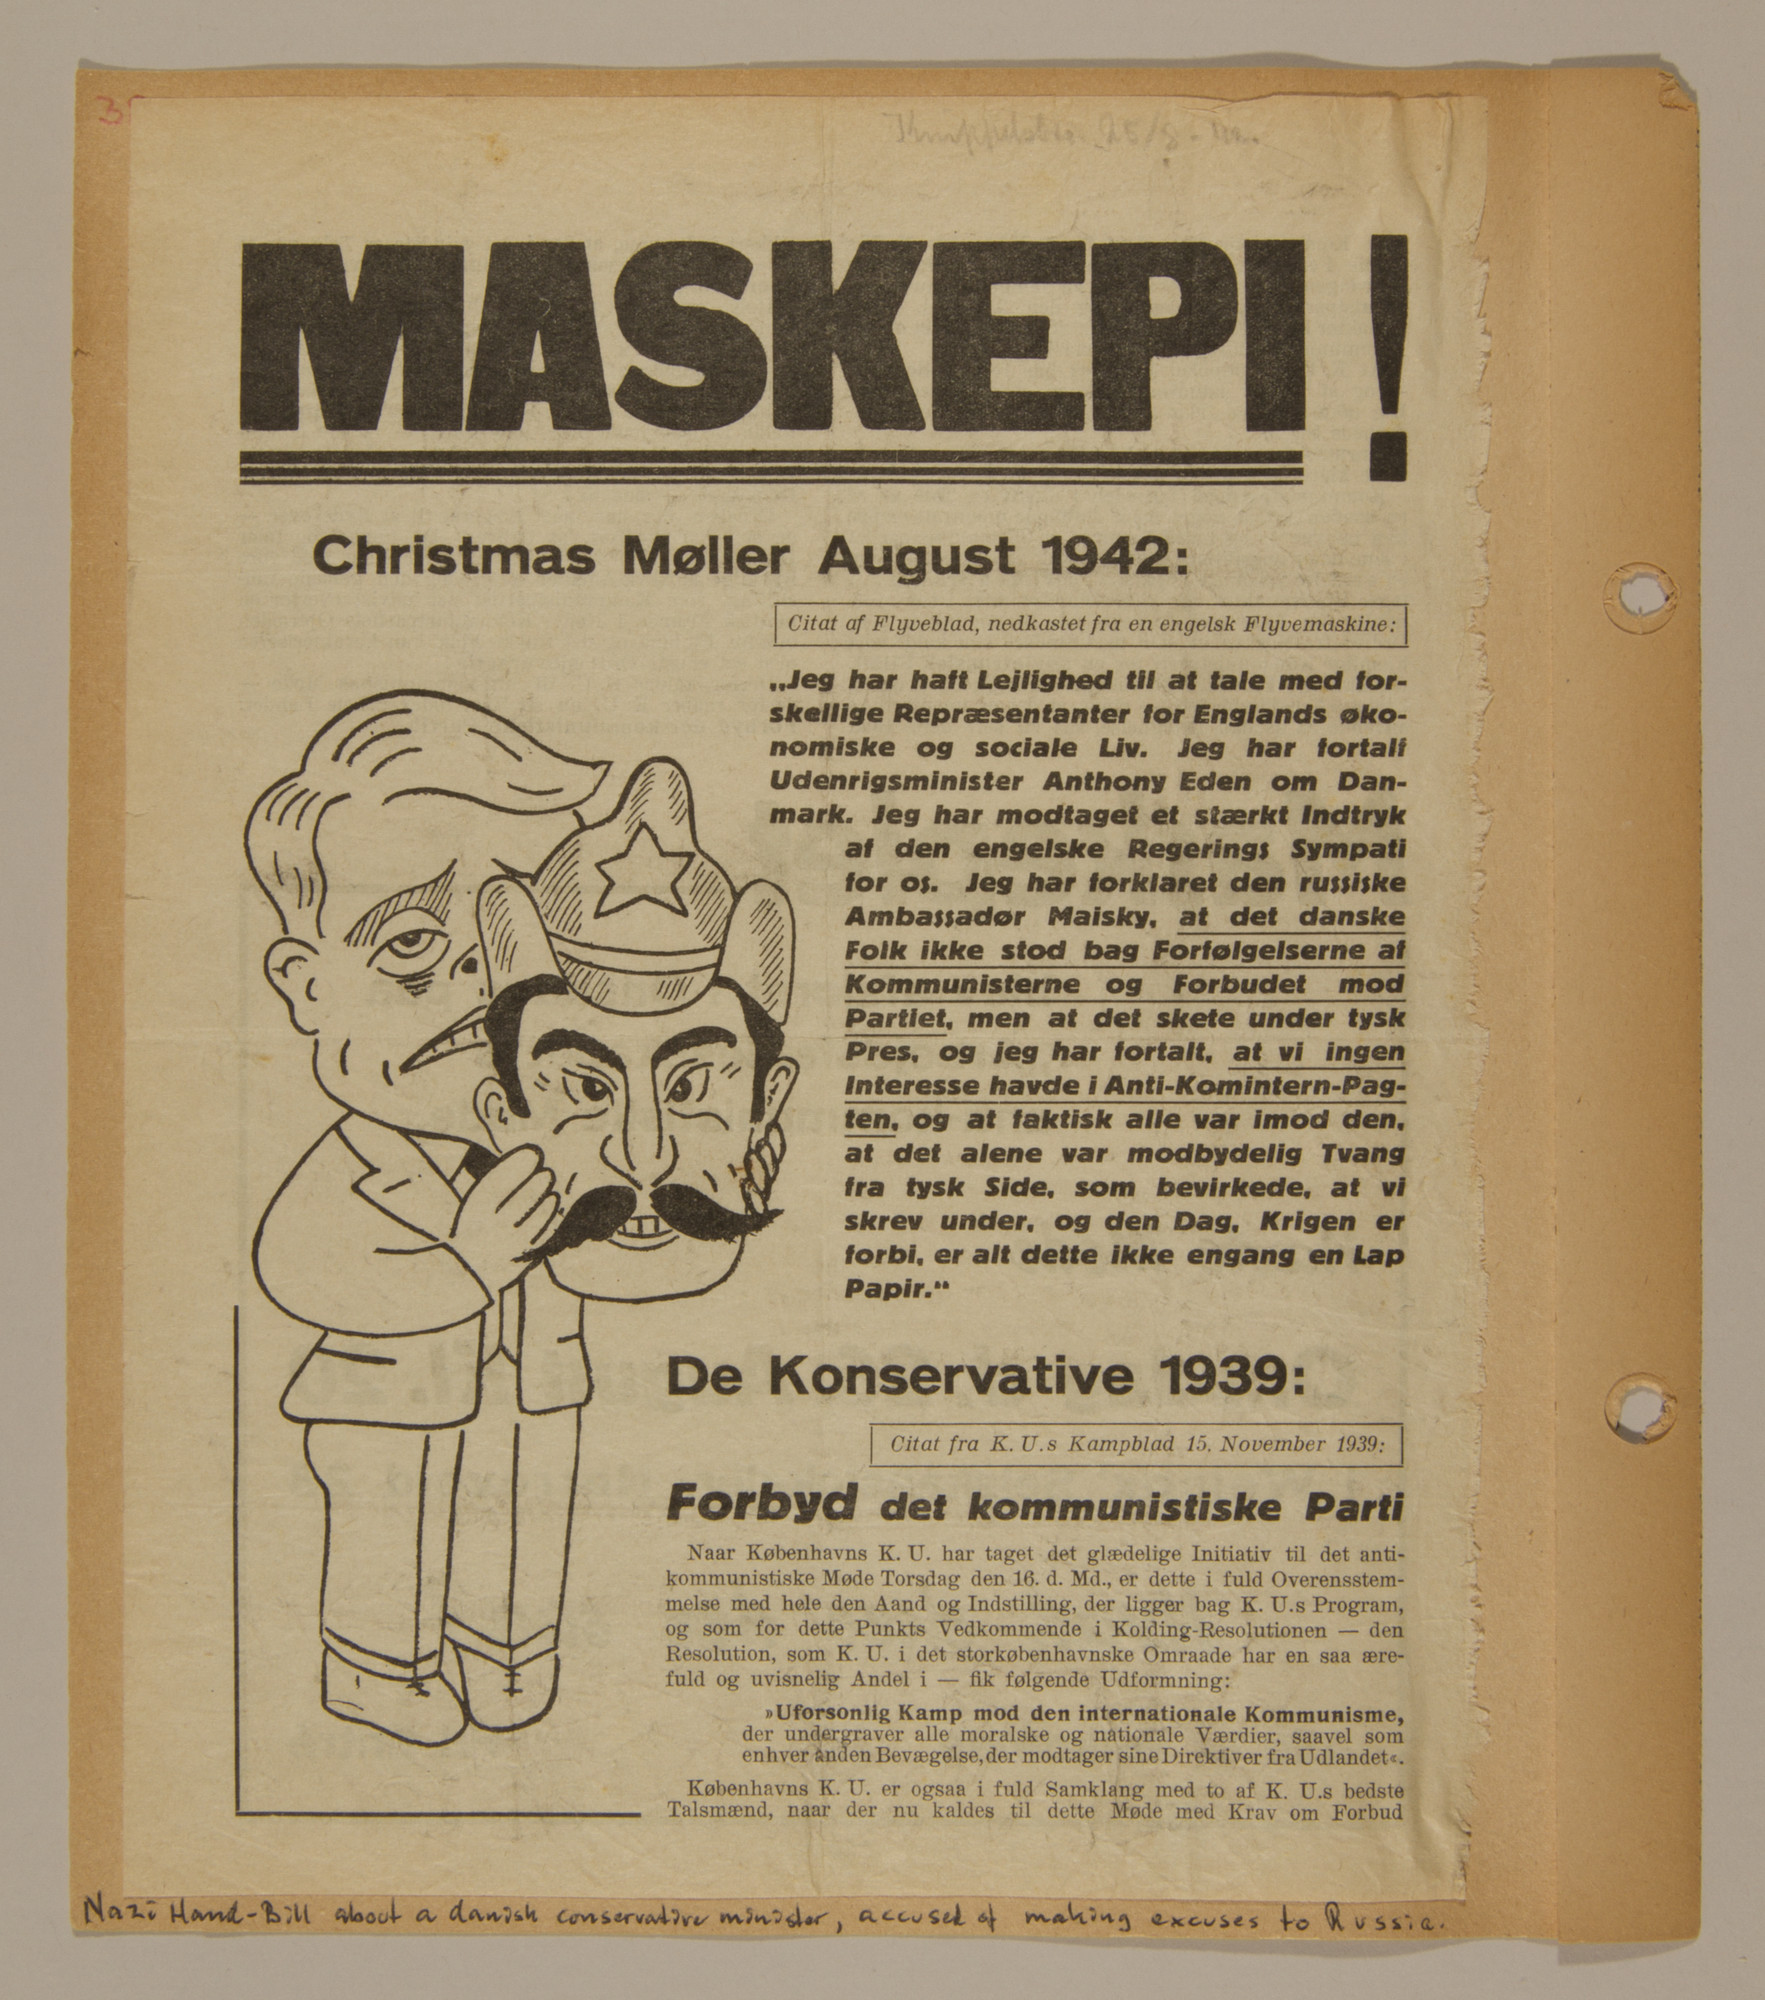 Page from volume two of a set of scrapbooks compiled by Bjorn Sibbern, a Danish policeman and resistance member, documenting the German occupation of Denmark.  This page contains a handbill with a cartoon illustration about a Danish conservative minister accused of making excuses to Russia.